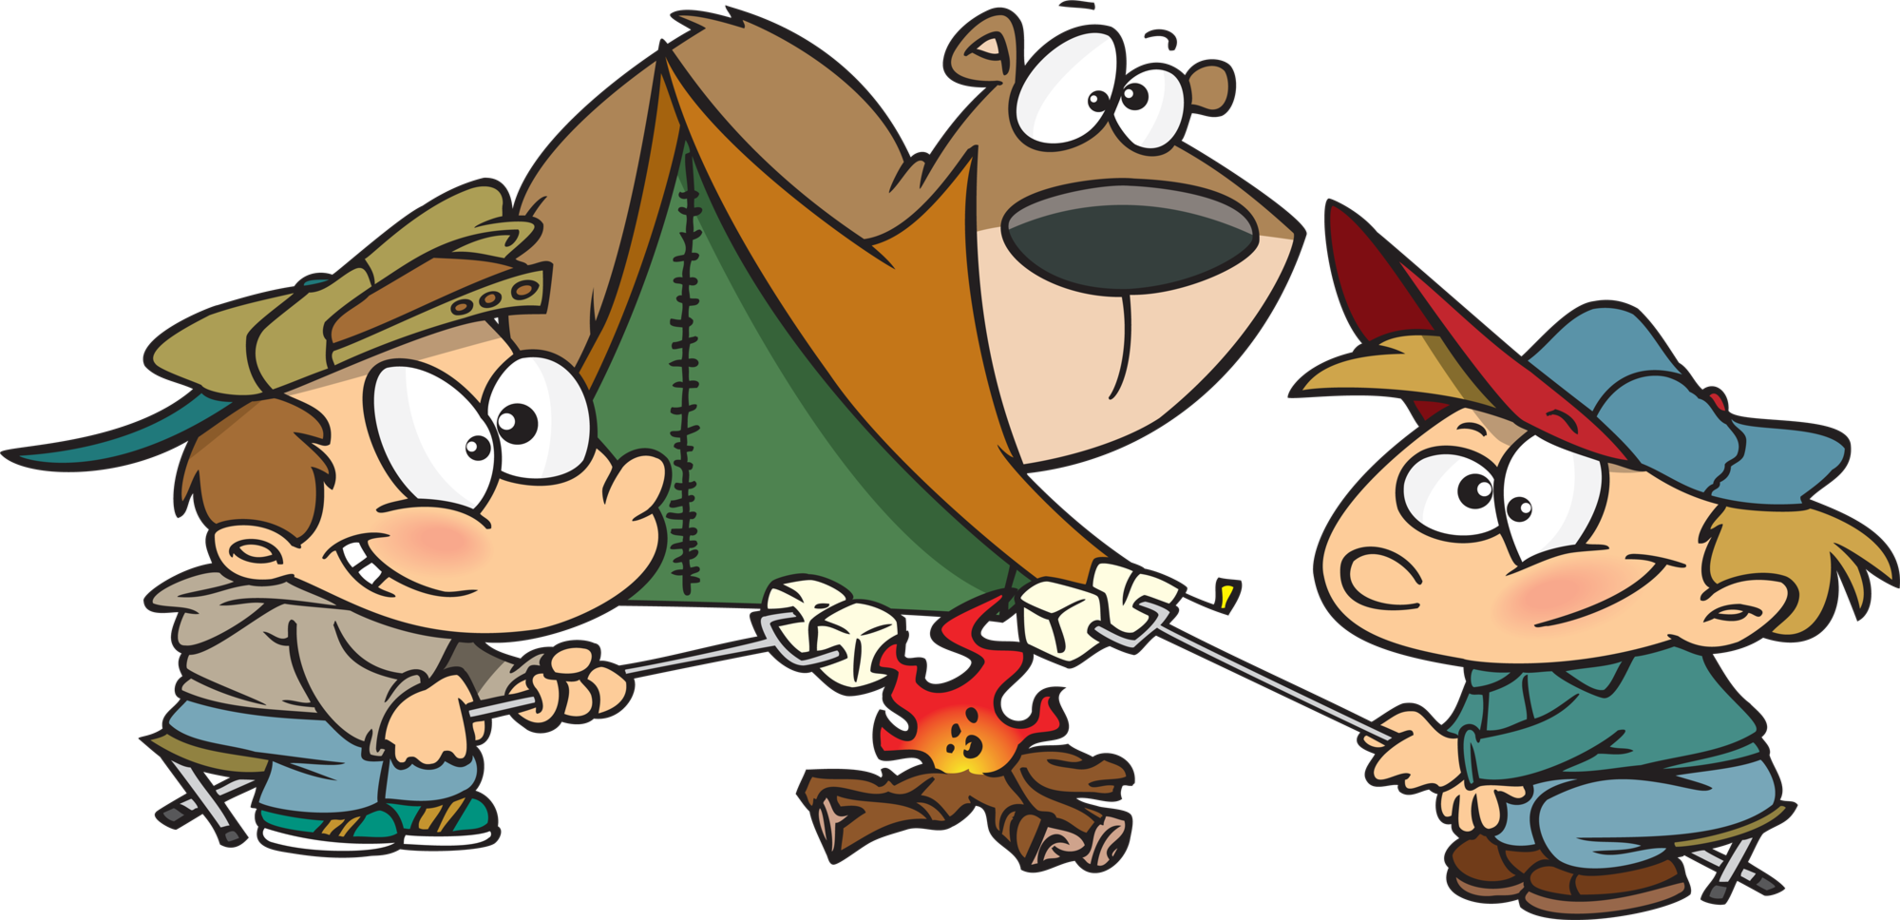 Planning clipart planning preparation. Camping advice for those